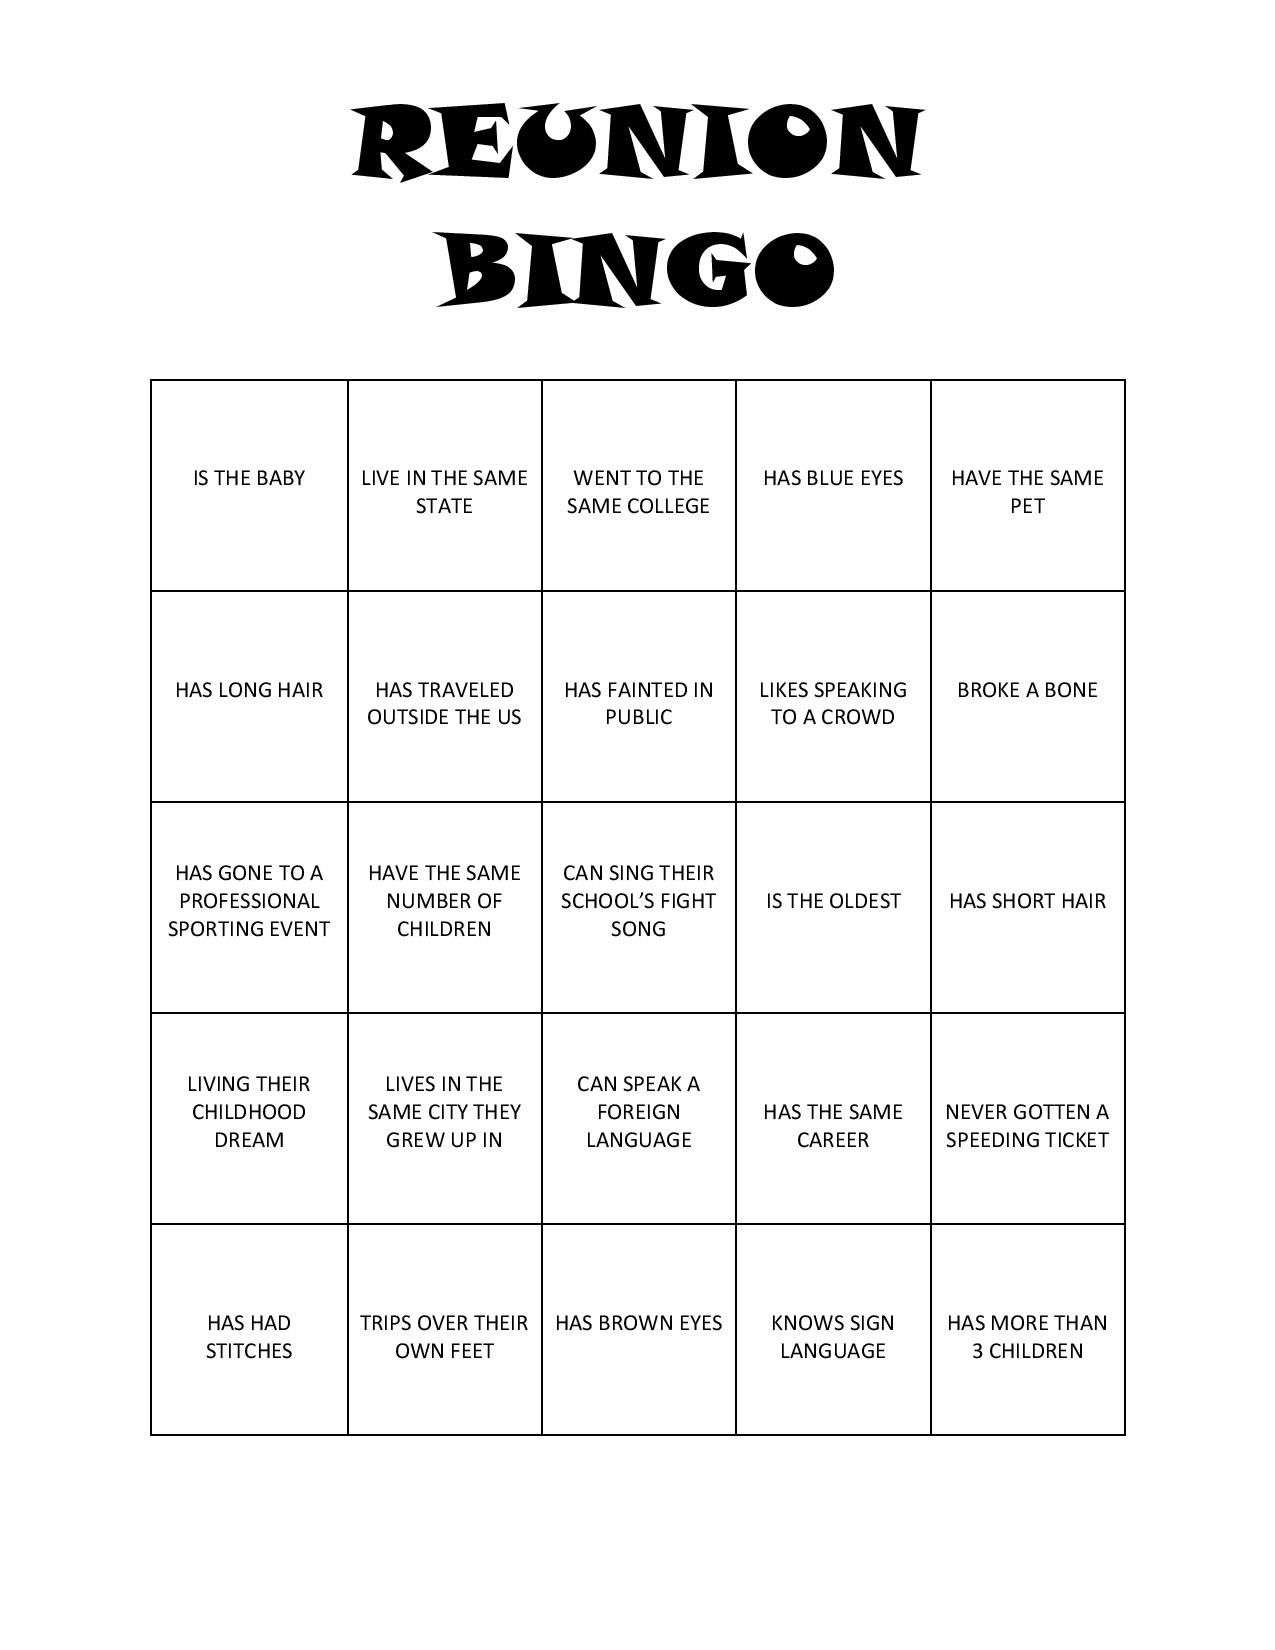 Print this bingo game for your next reunion for loads of fun and to ...